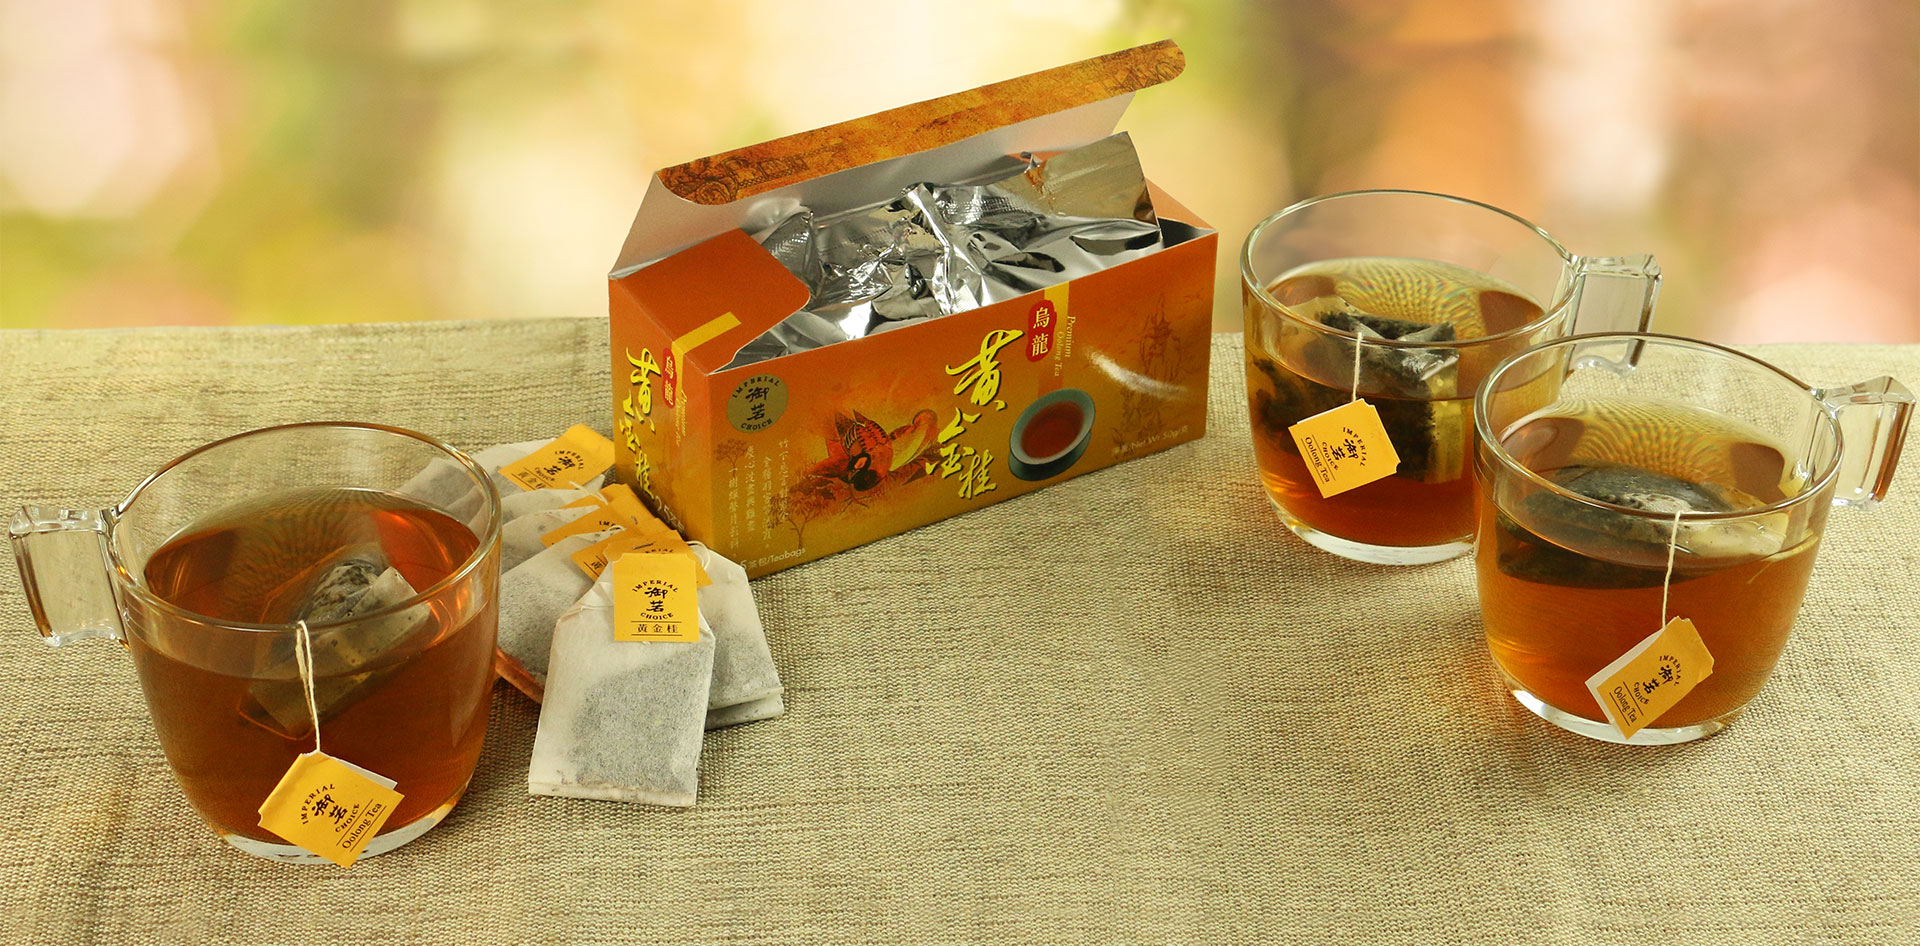 The Imperial Choice Slimming Oolong